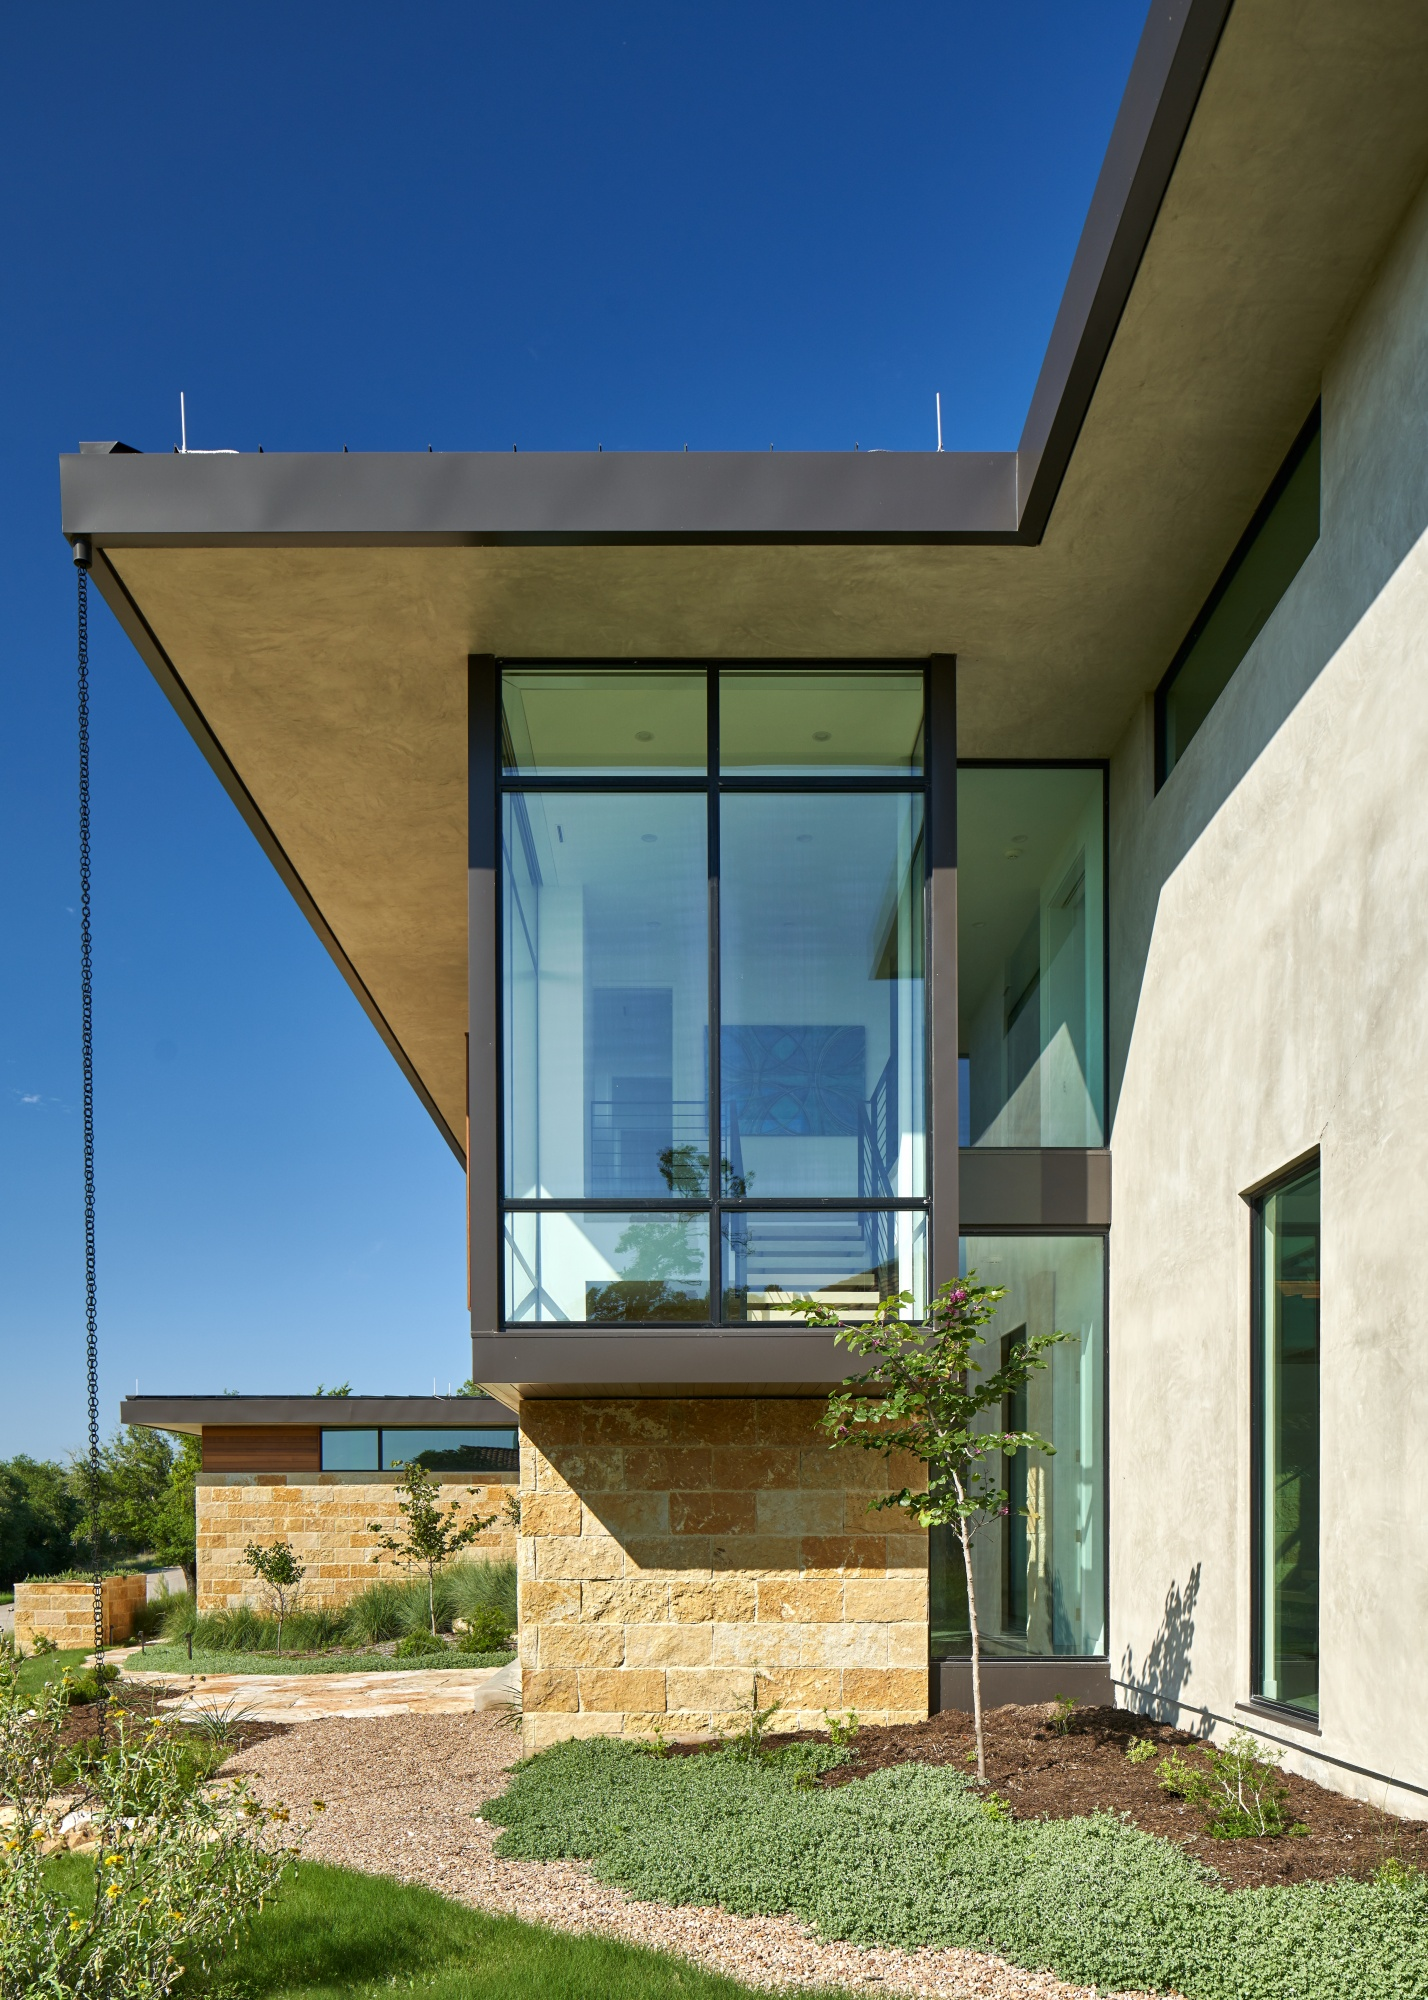 Deep roof overhangs provide shading and protection.